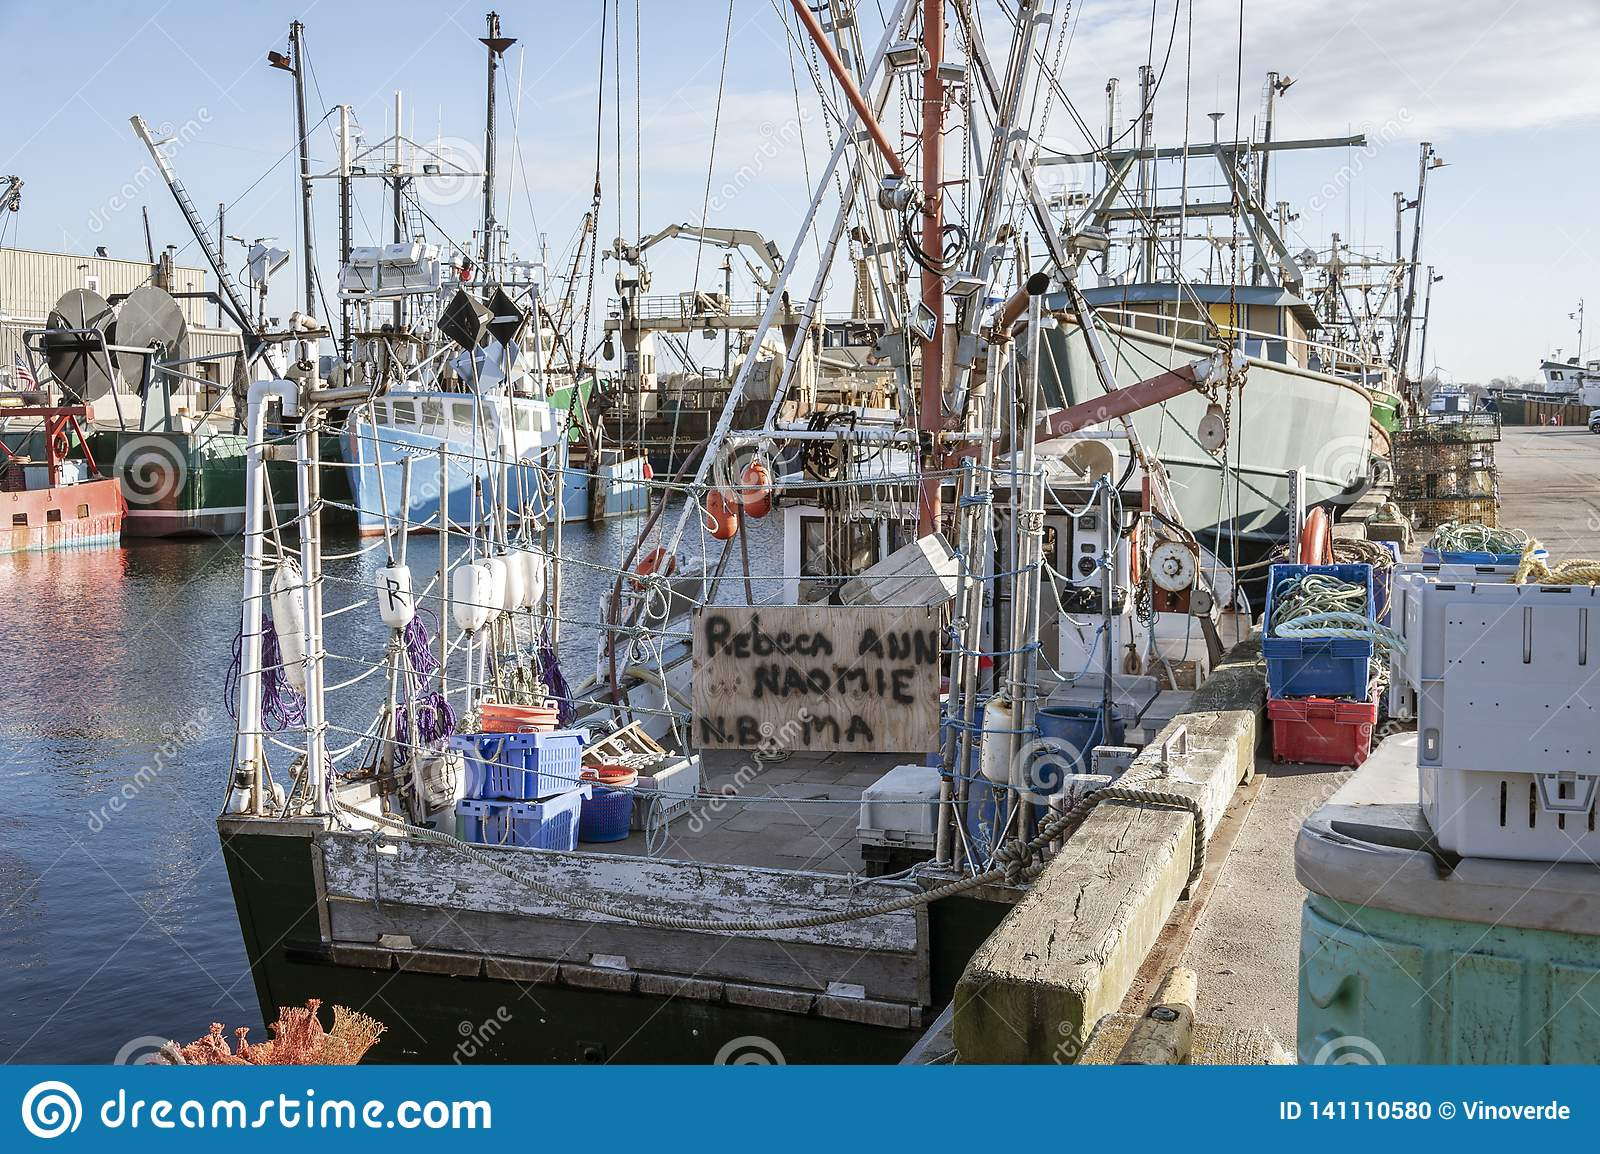 Hodgepodge Of Fishing Boat Rigging On Docked Boats Editorial